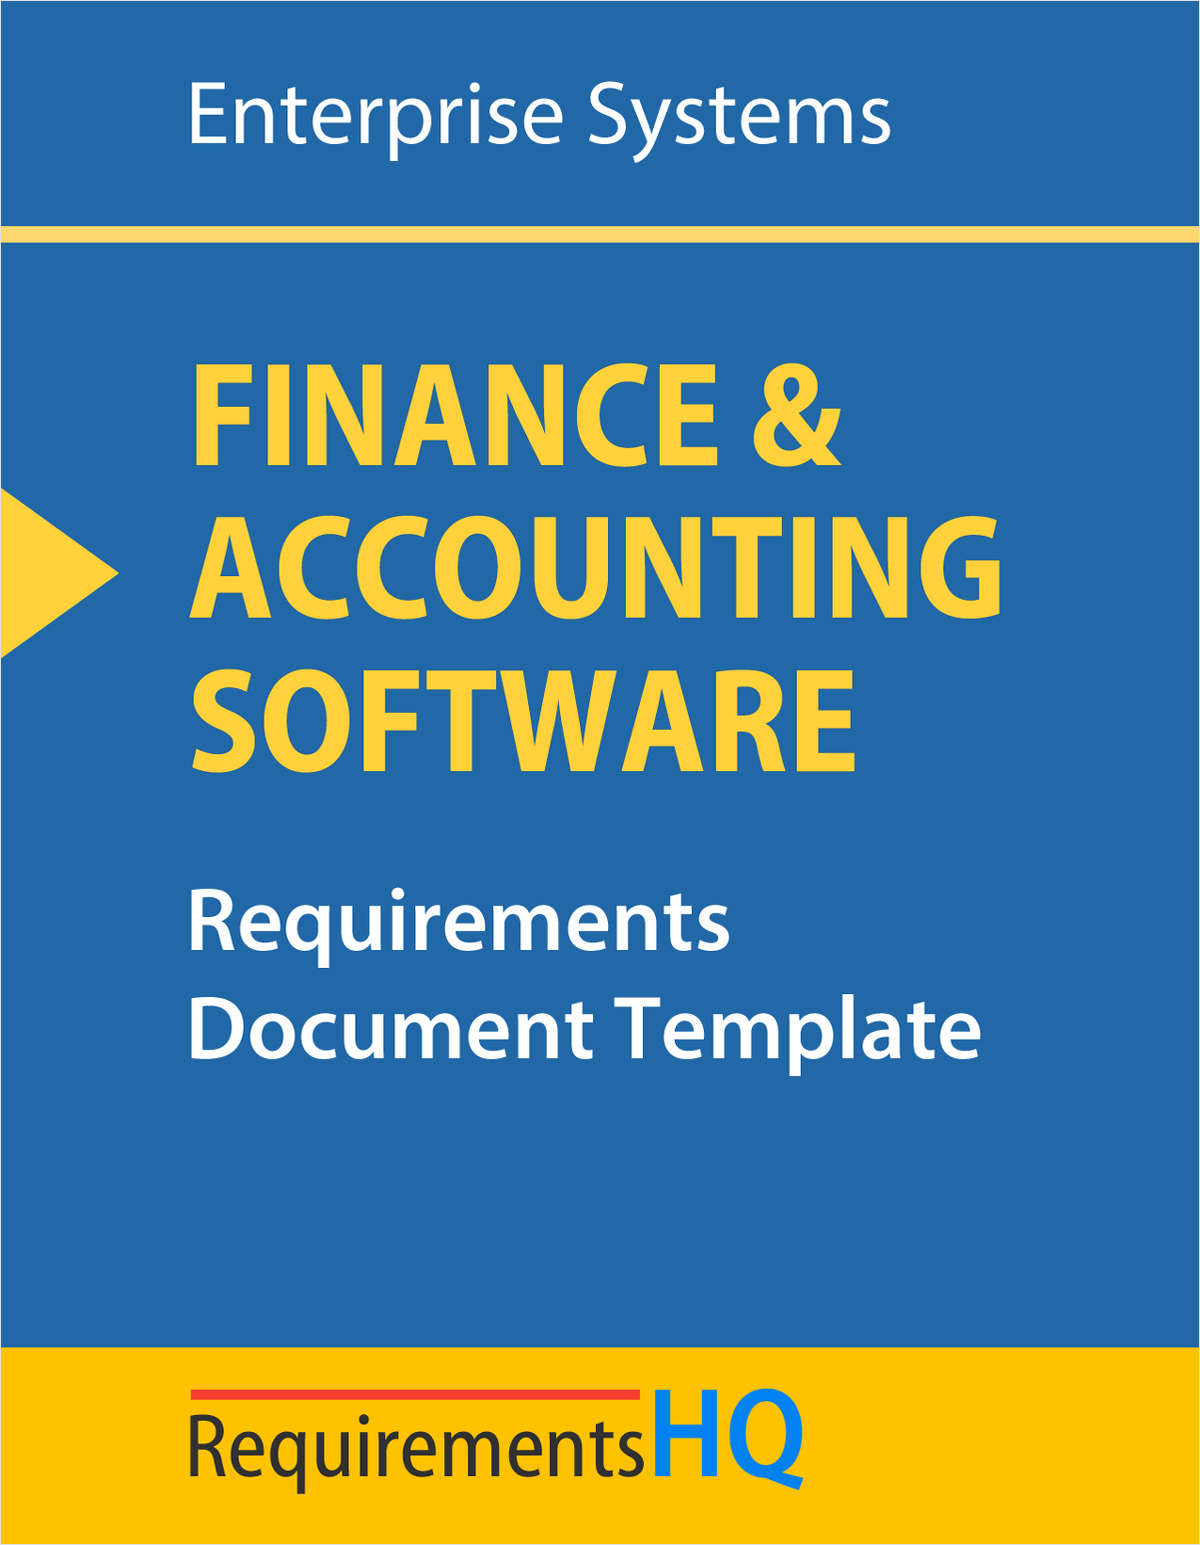 Enterprise Accounting Software Requirements: Template Document